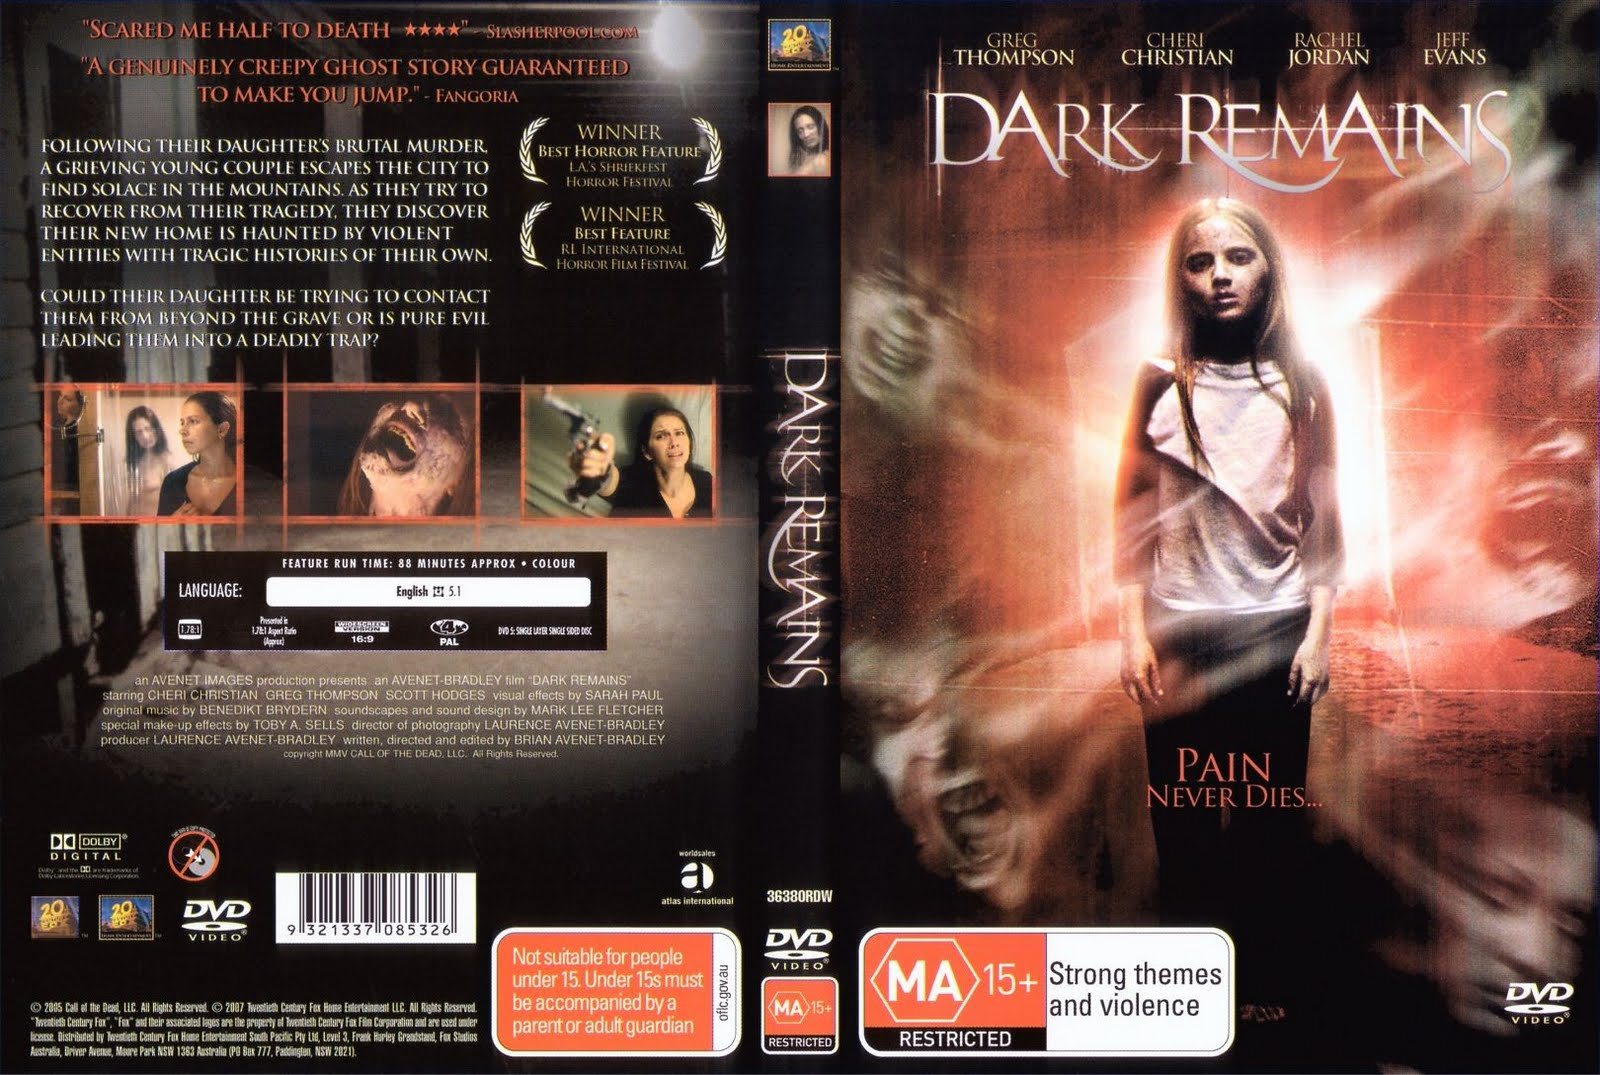 Dark Remains Dark Remains HORRORPEDIA